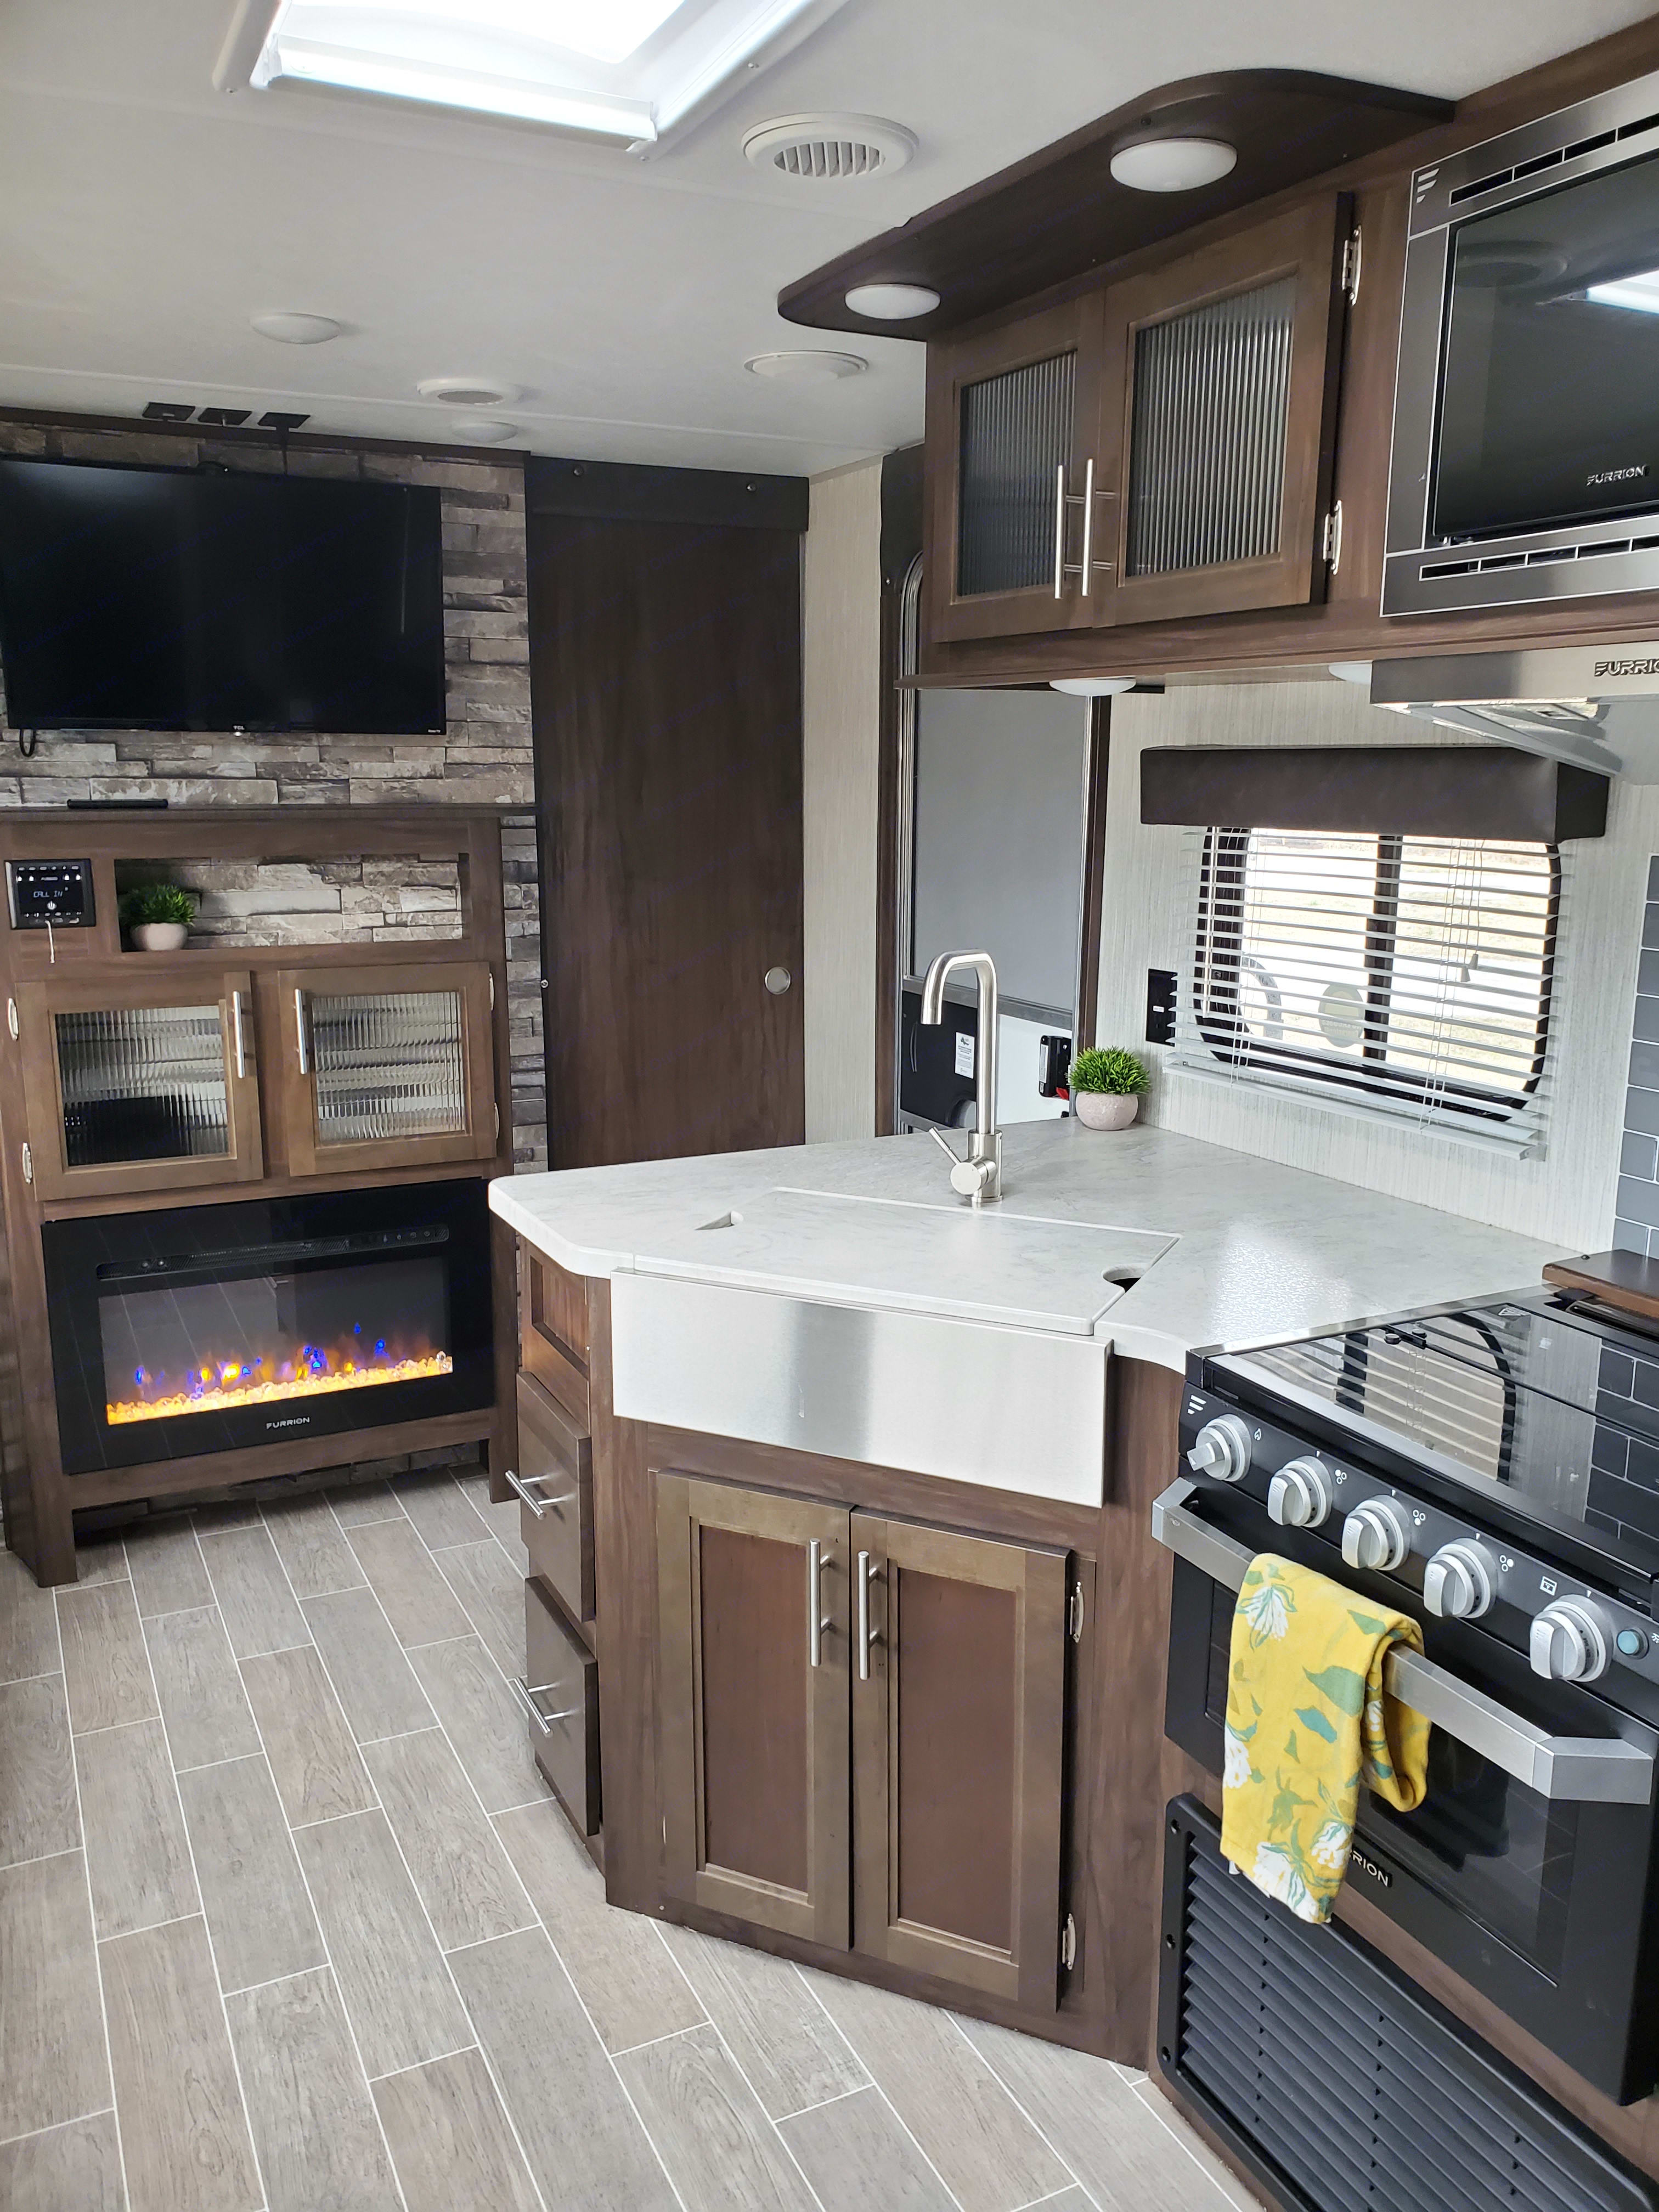 You will find all you need to prepare your food inside and out in this kitchen, including a charcoal grill in the outside storage.. Forest River Cherokee Grey Wolf 2020